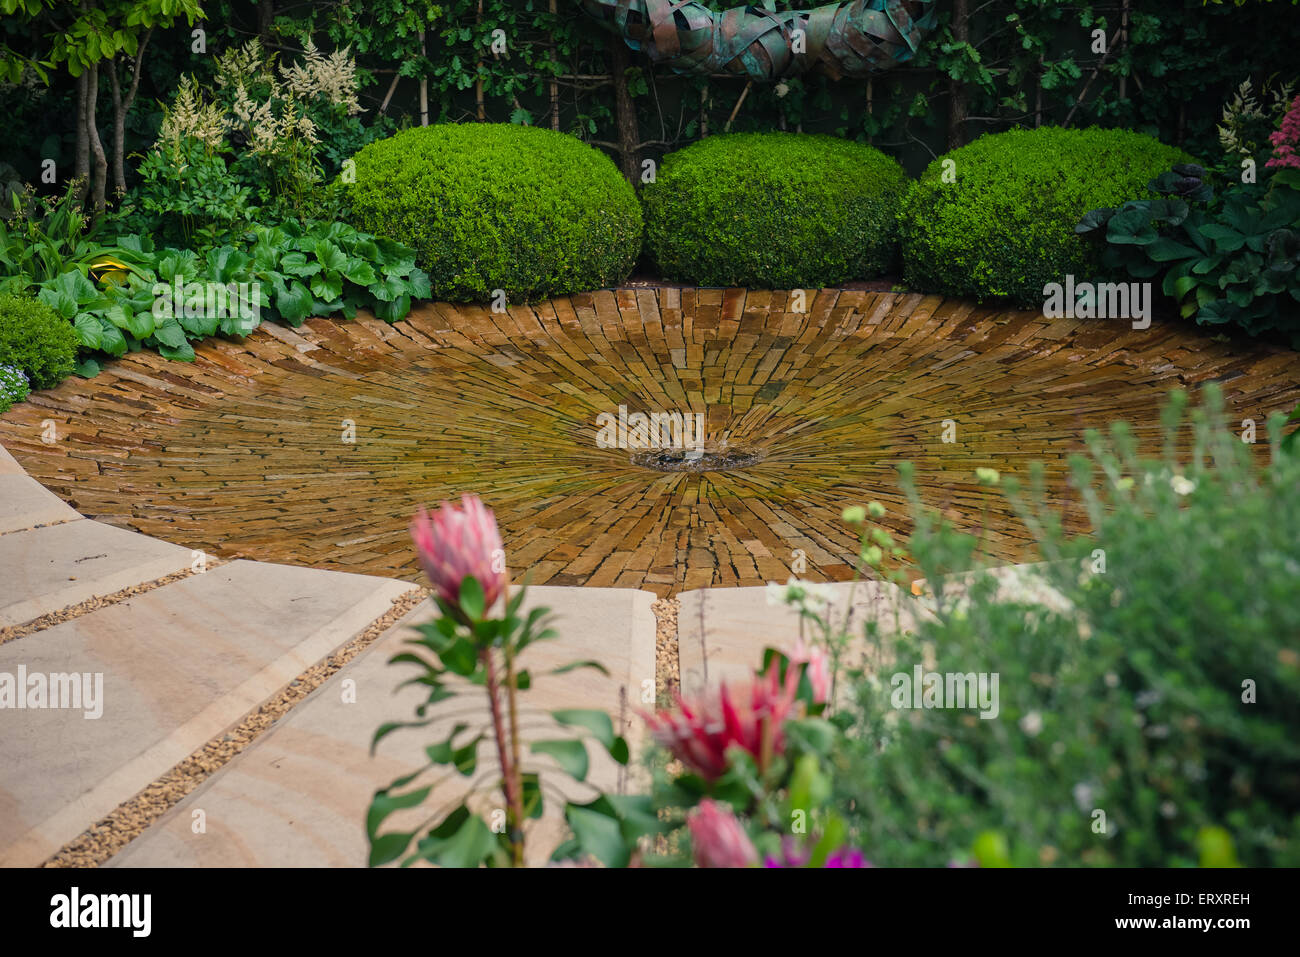 2015 RHS Chelsea Flower Show, The Time In Between by Husqvarna and Gardena, designed by Charlie Albone - Stock Image